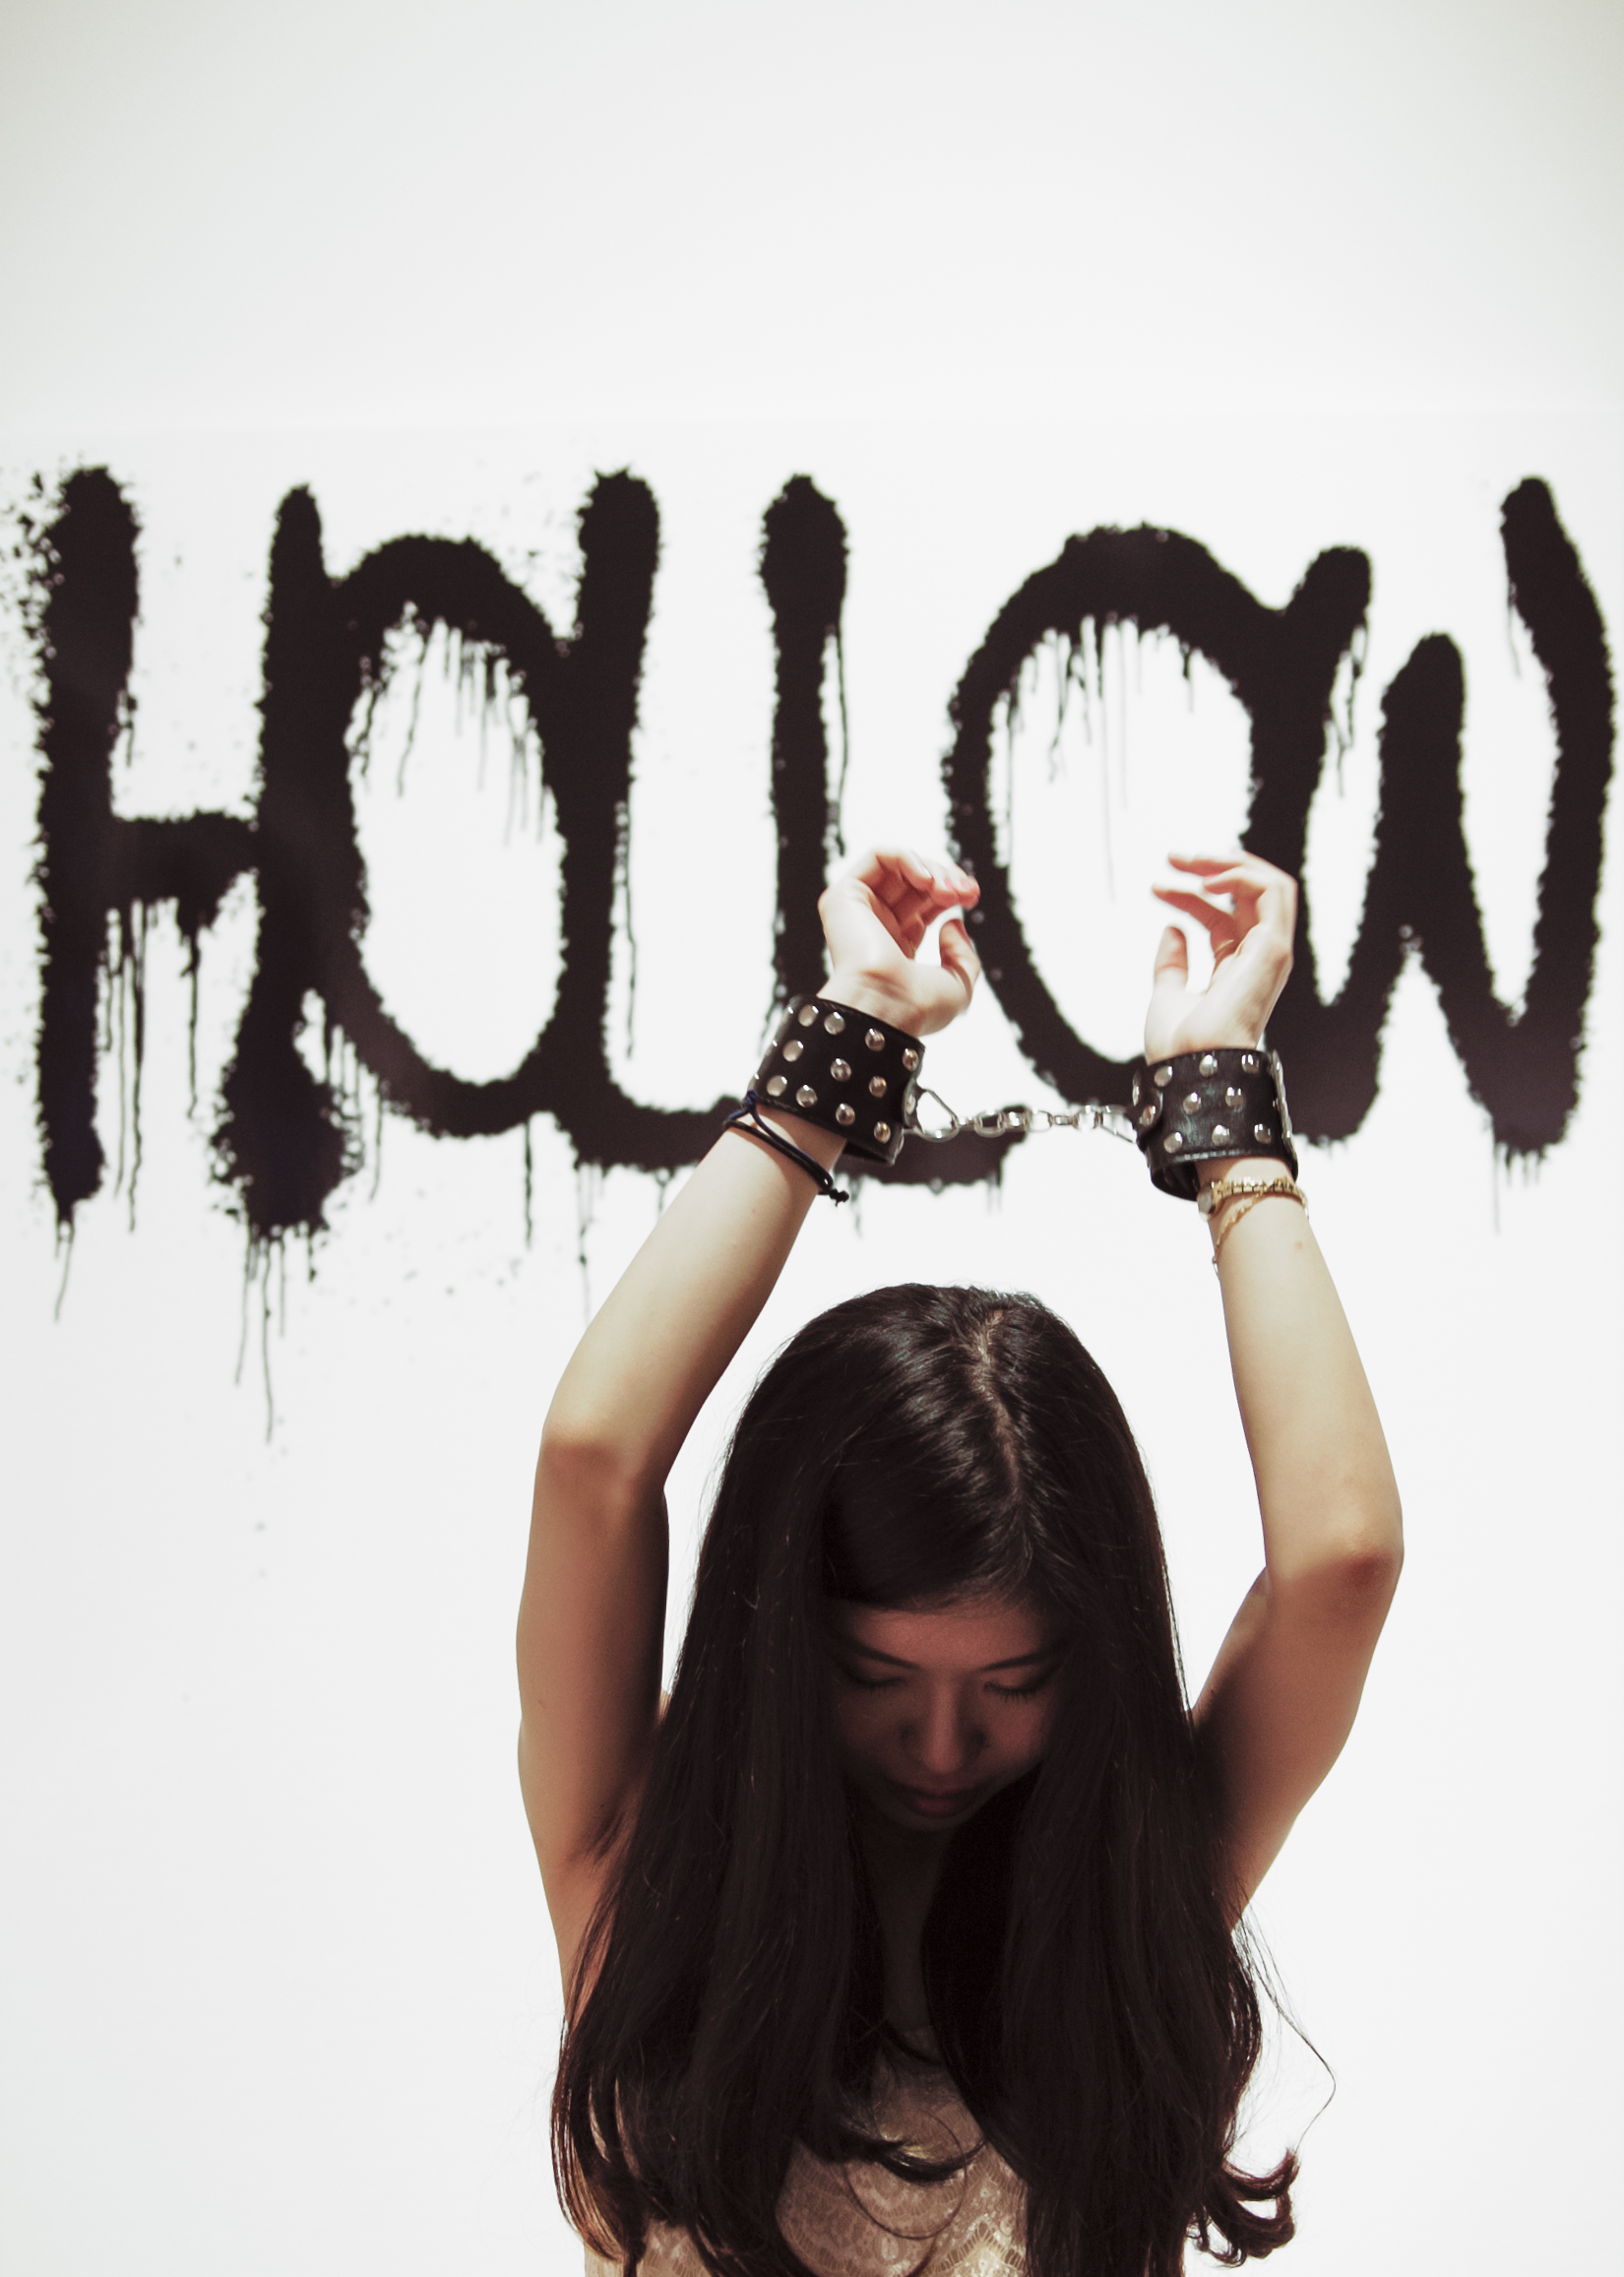 I am hallow, and so is the world